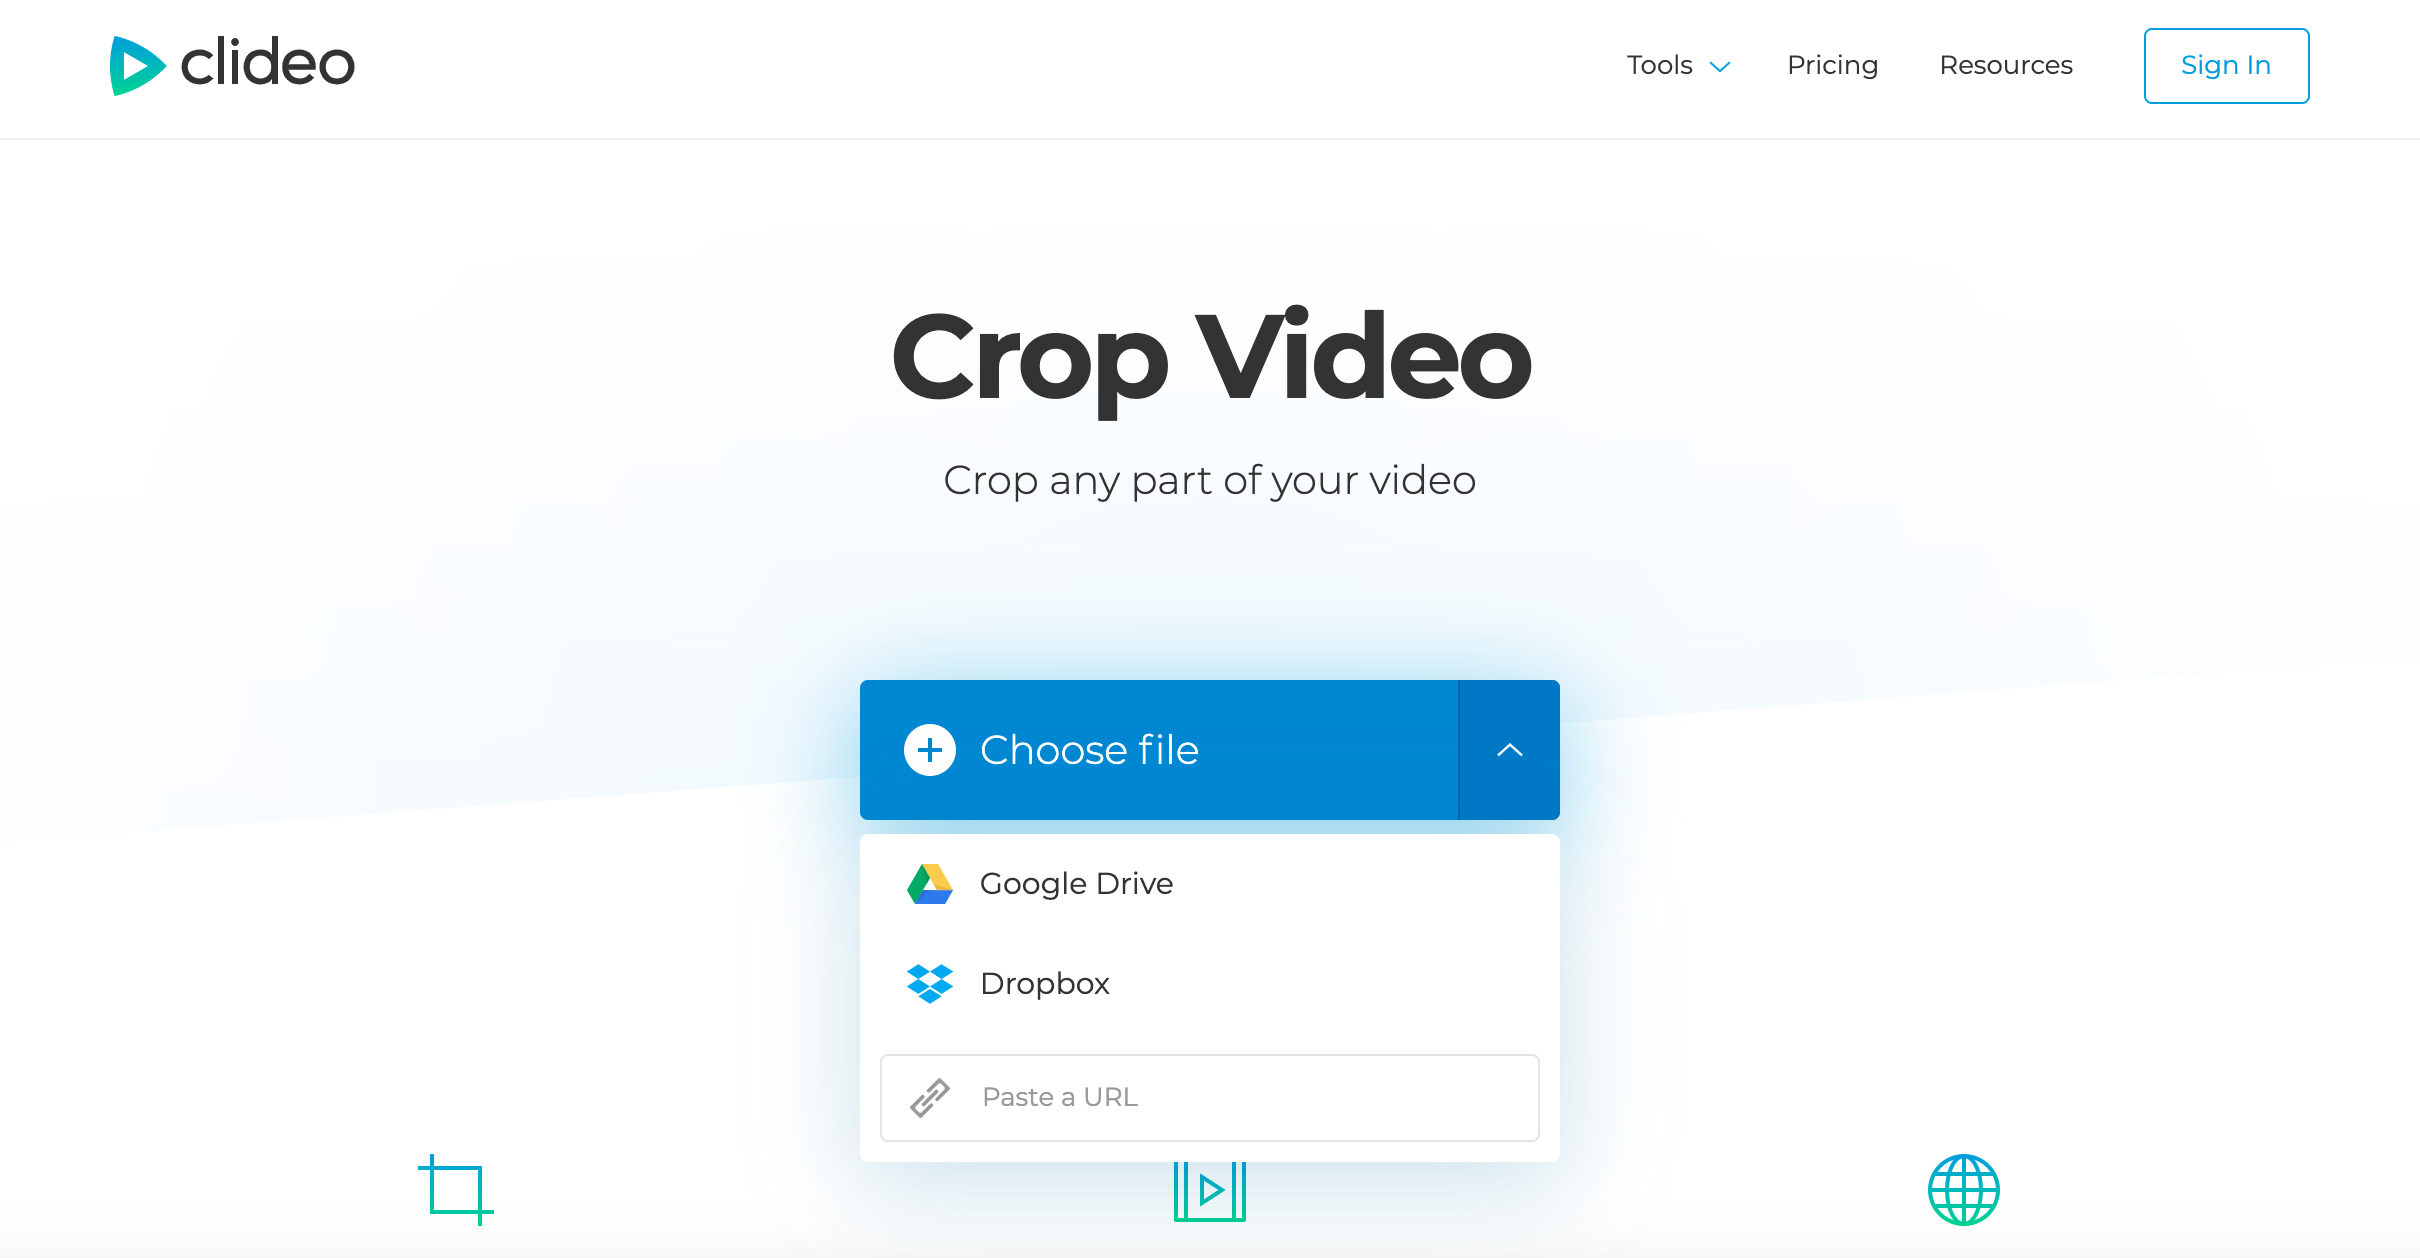 Upload a video to crop to square